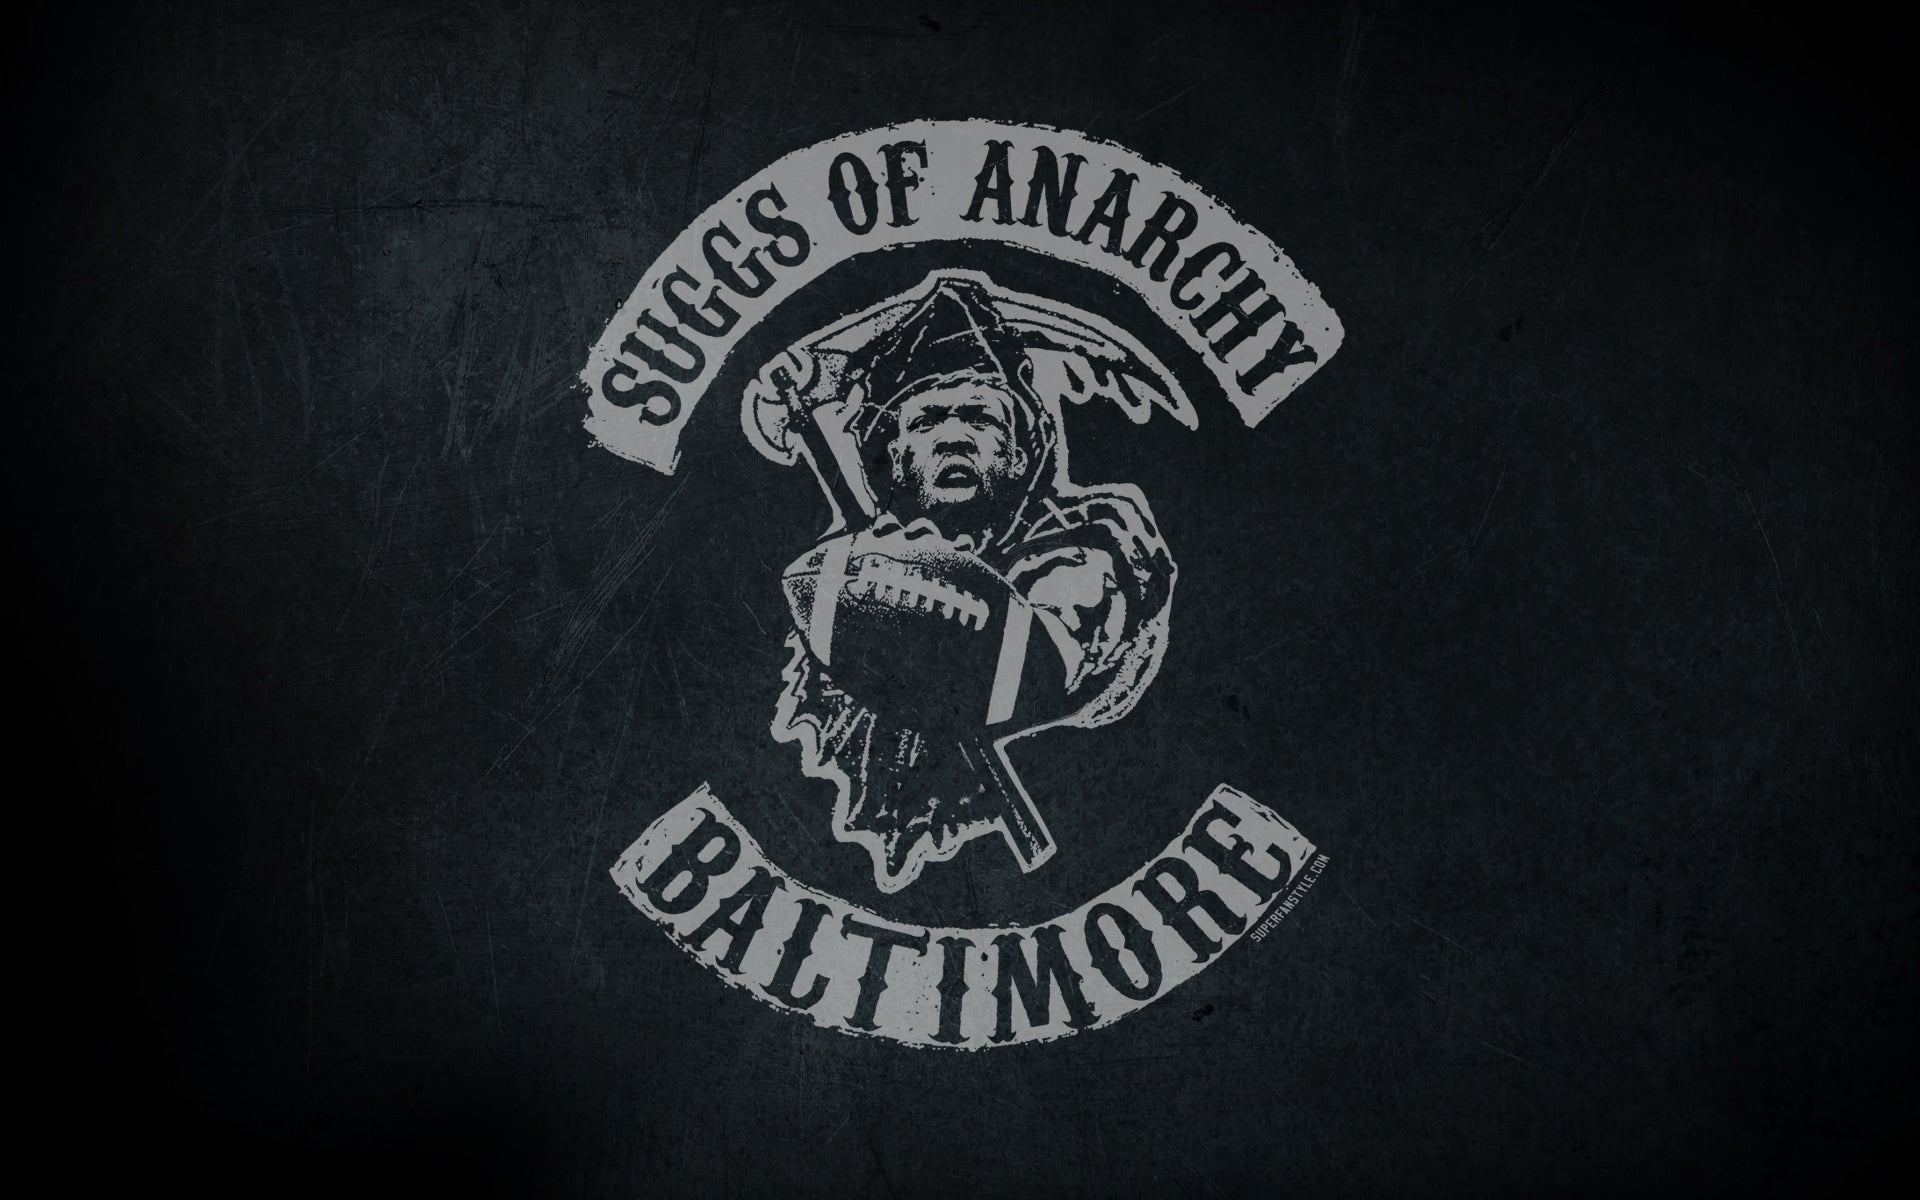 Suggs of Anarchy Wallpaper